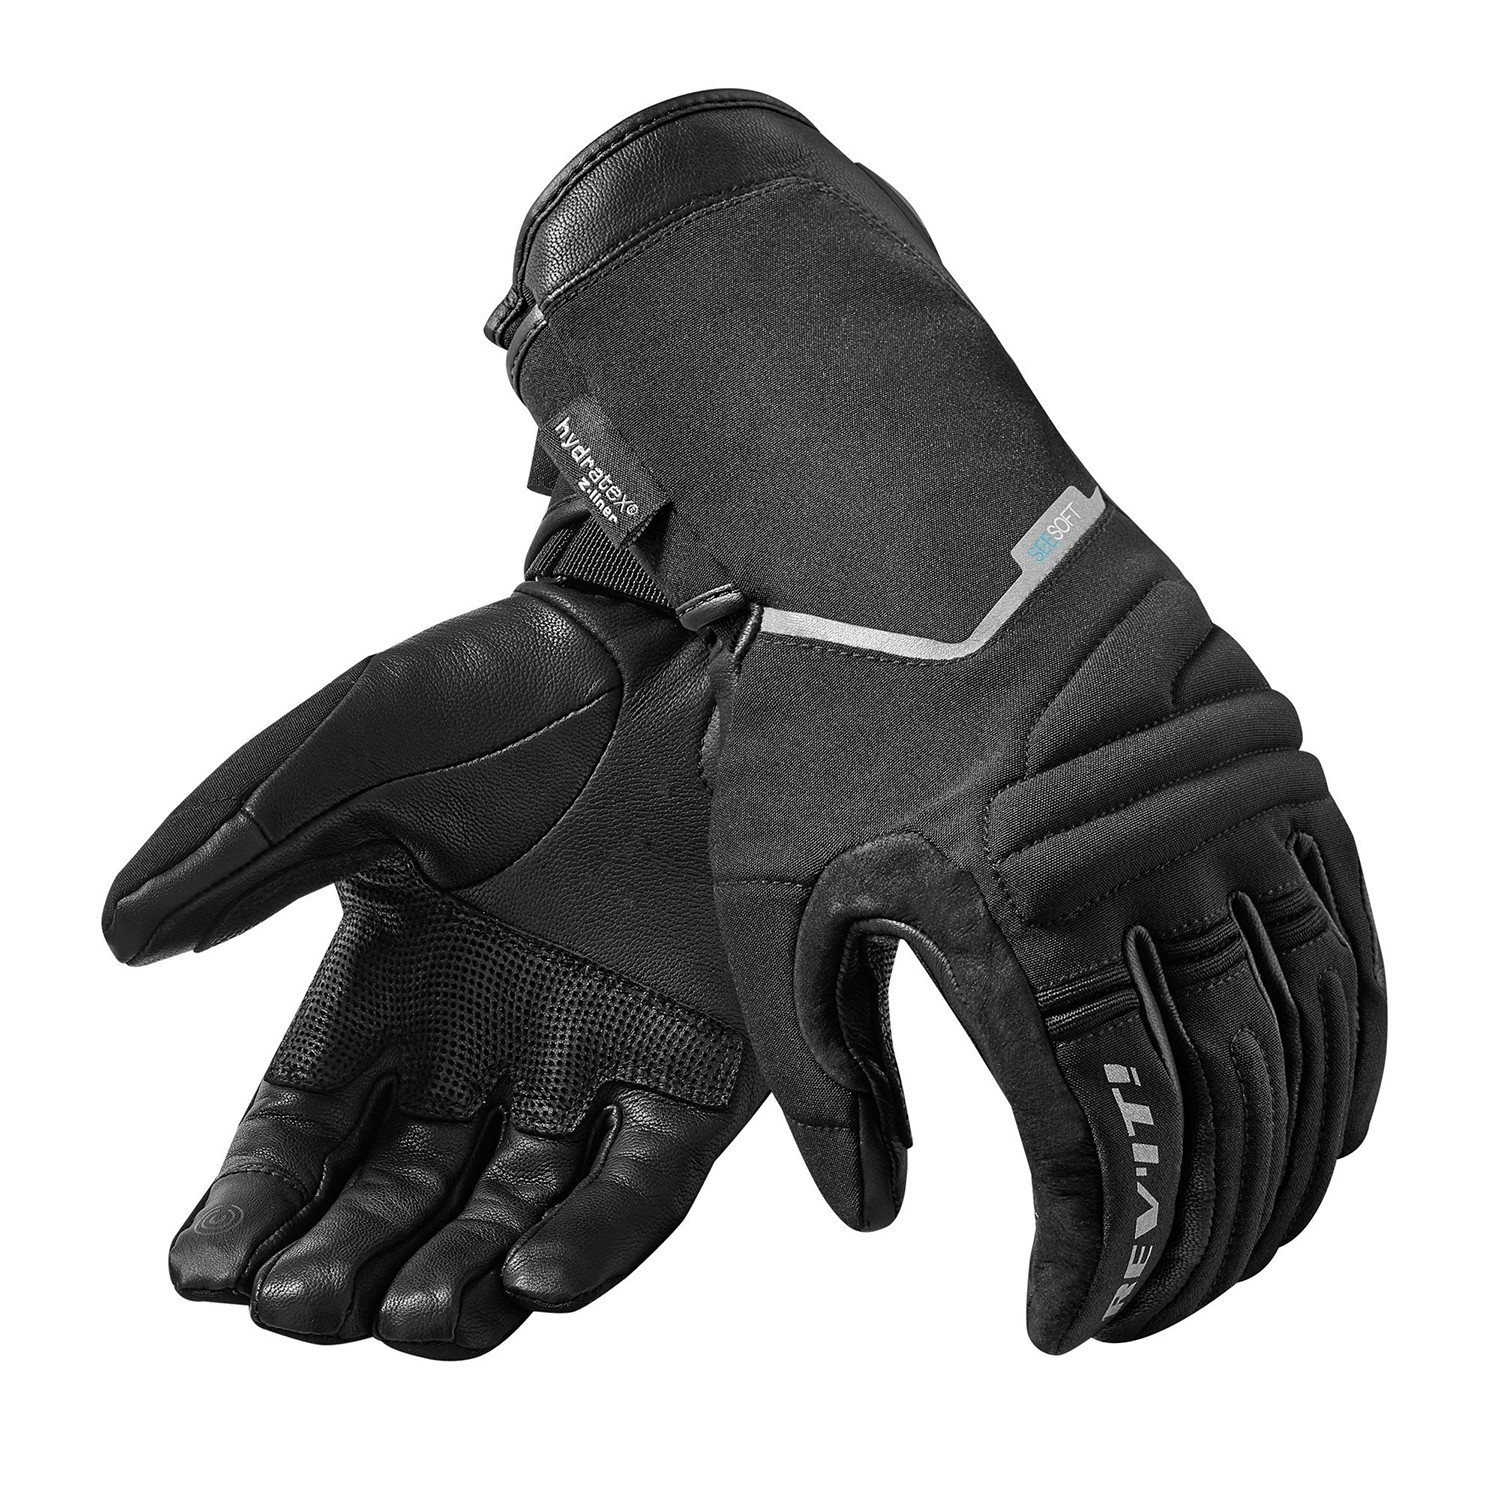 Guantes Revit Drifter 2 H2o Mujer Urbano Impermeable